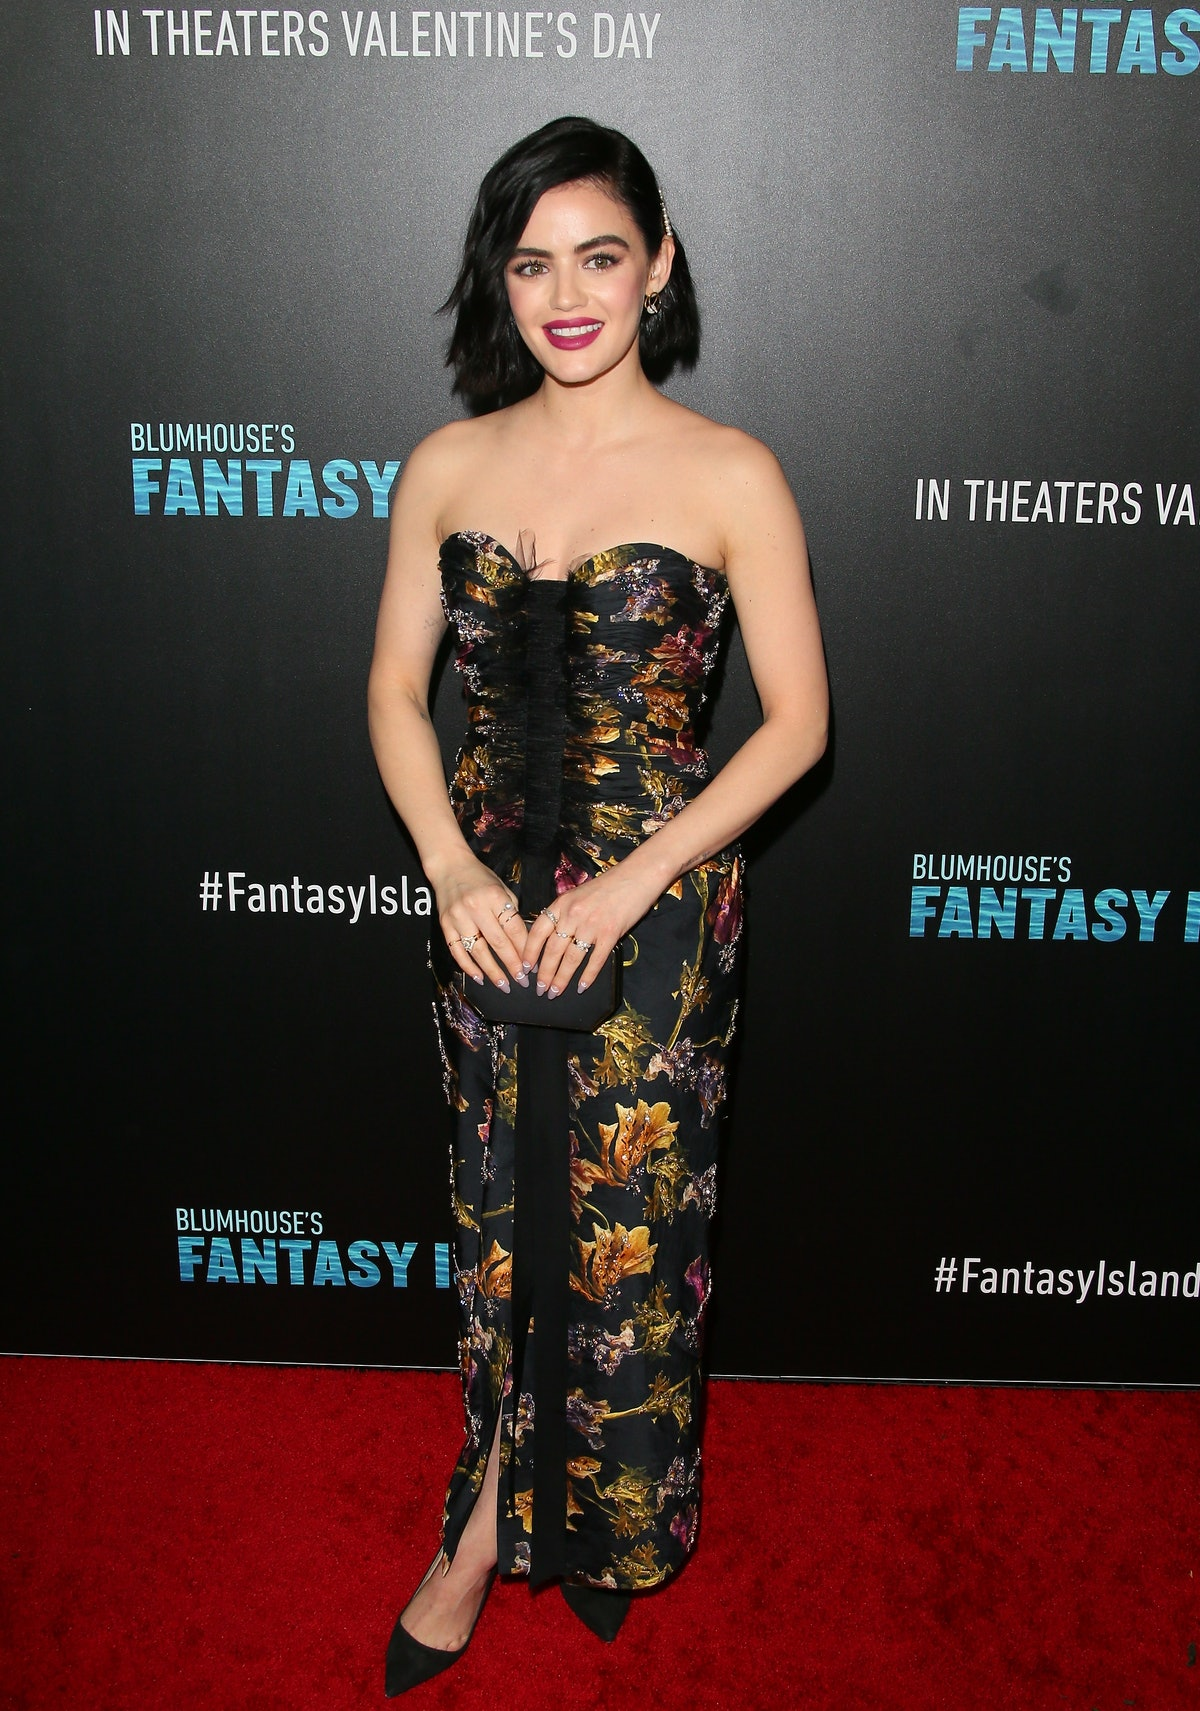 """CENTURY CITY, CALIFORNIA - FEBRUARY 11: Lucy Hale attends the premiere of Columbia Pictures' """"Blumhouse's Fantasy Island"""" at AMC Century City 15 on February 11, 2020 in Century City, California. (Photo by Jean Baptiste Lacroix/WireImage)"""